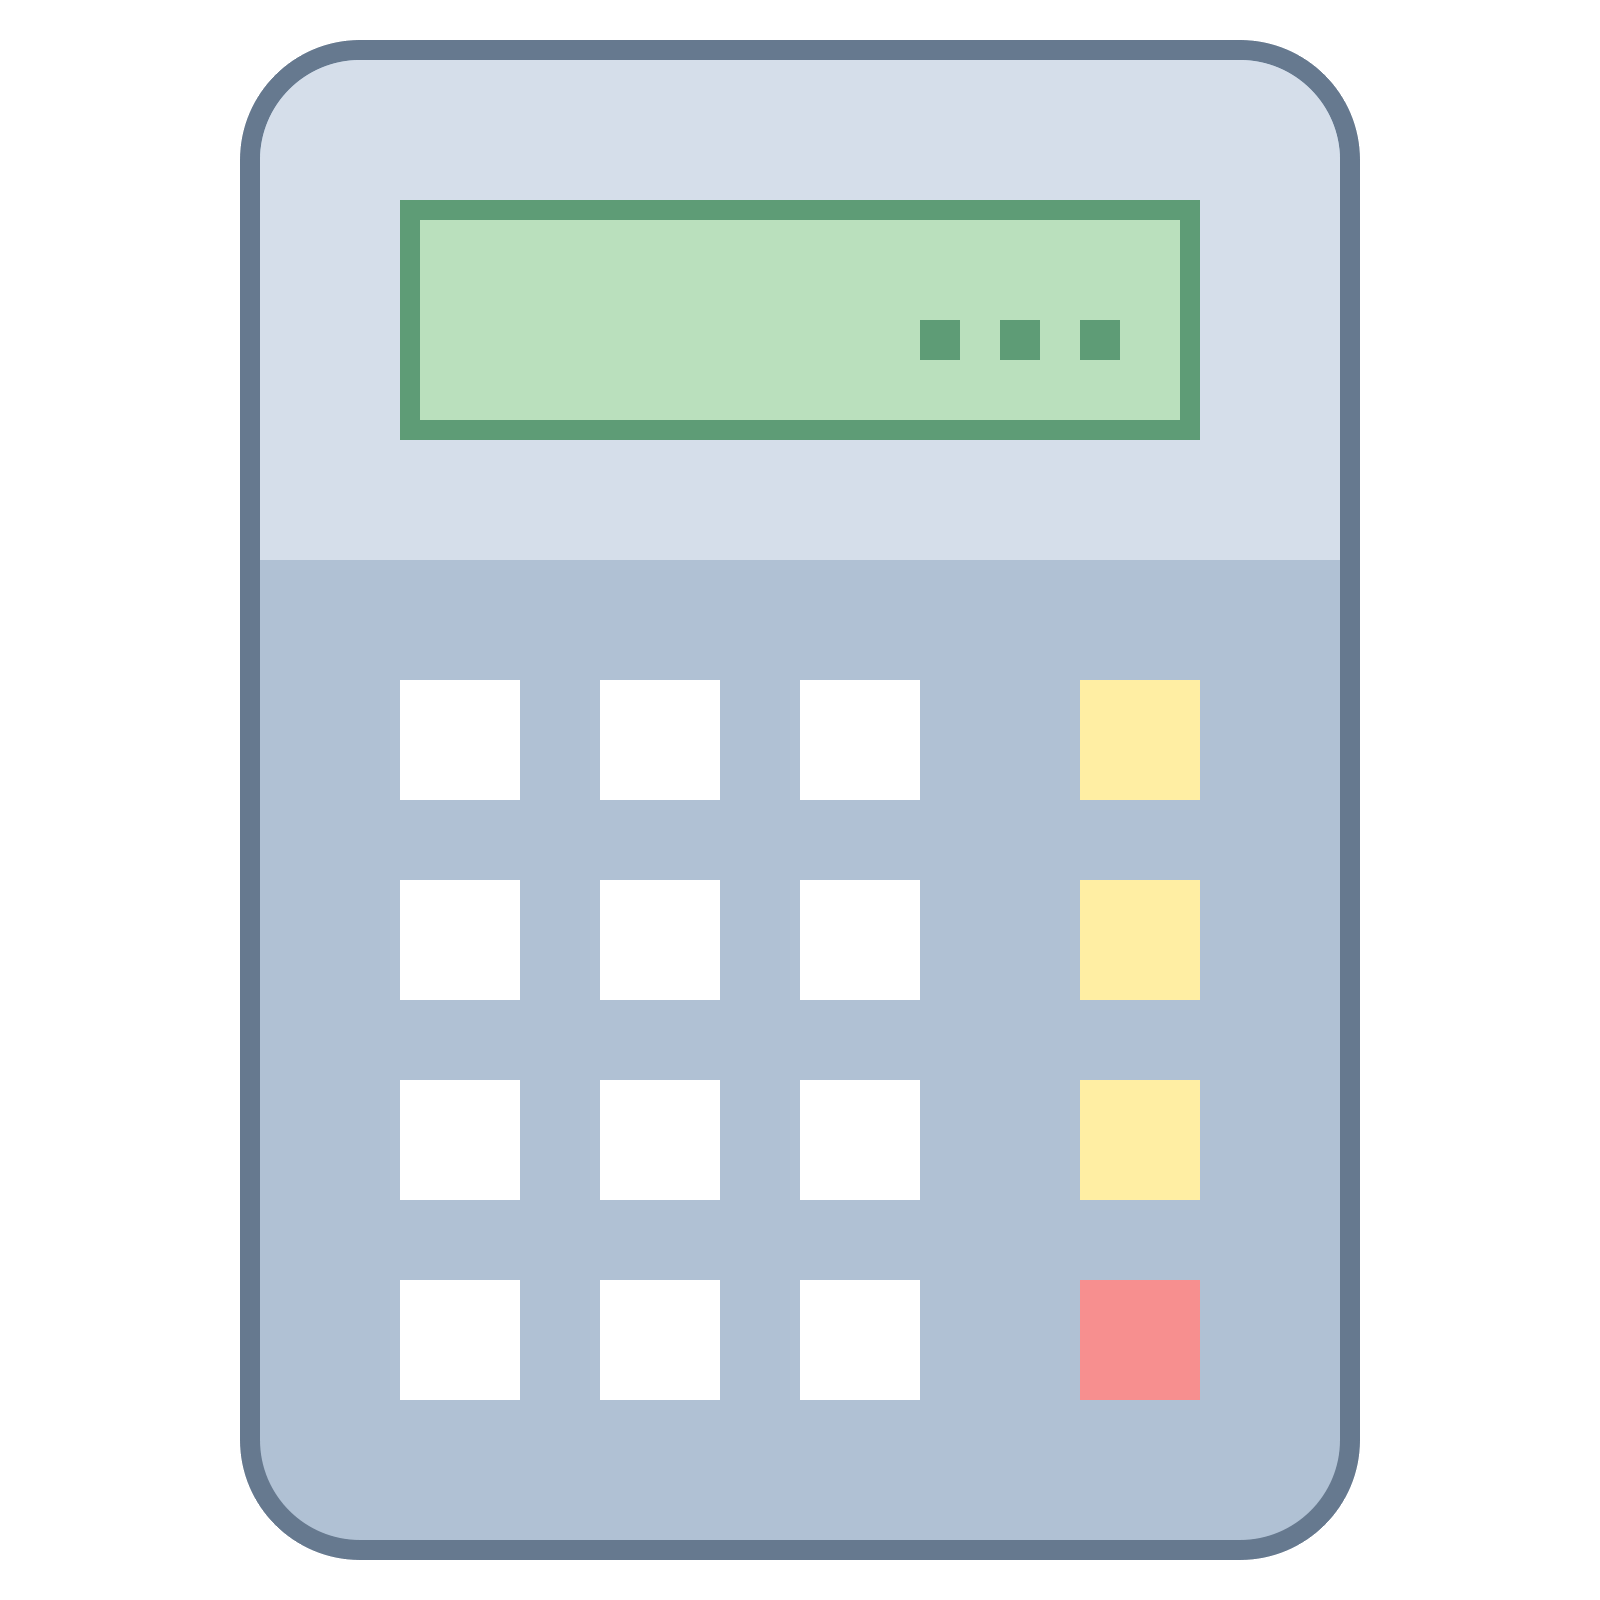 Calculator Icon An Icon Of A Calculator Which Is One Big Rectangular Square And In The Rectangle There Are 12 Squares Connected T In 2020 Iphone Icon Calculator Icon